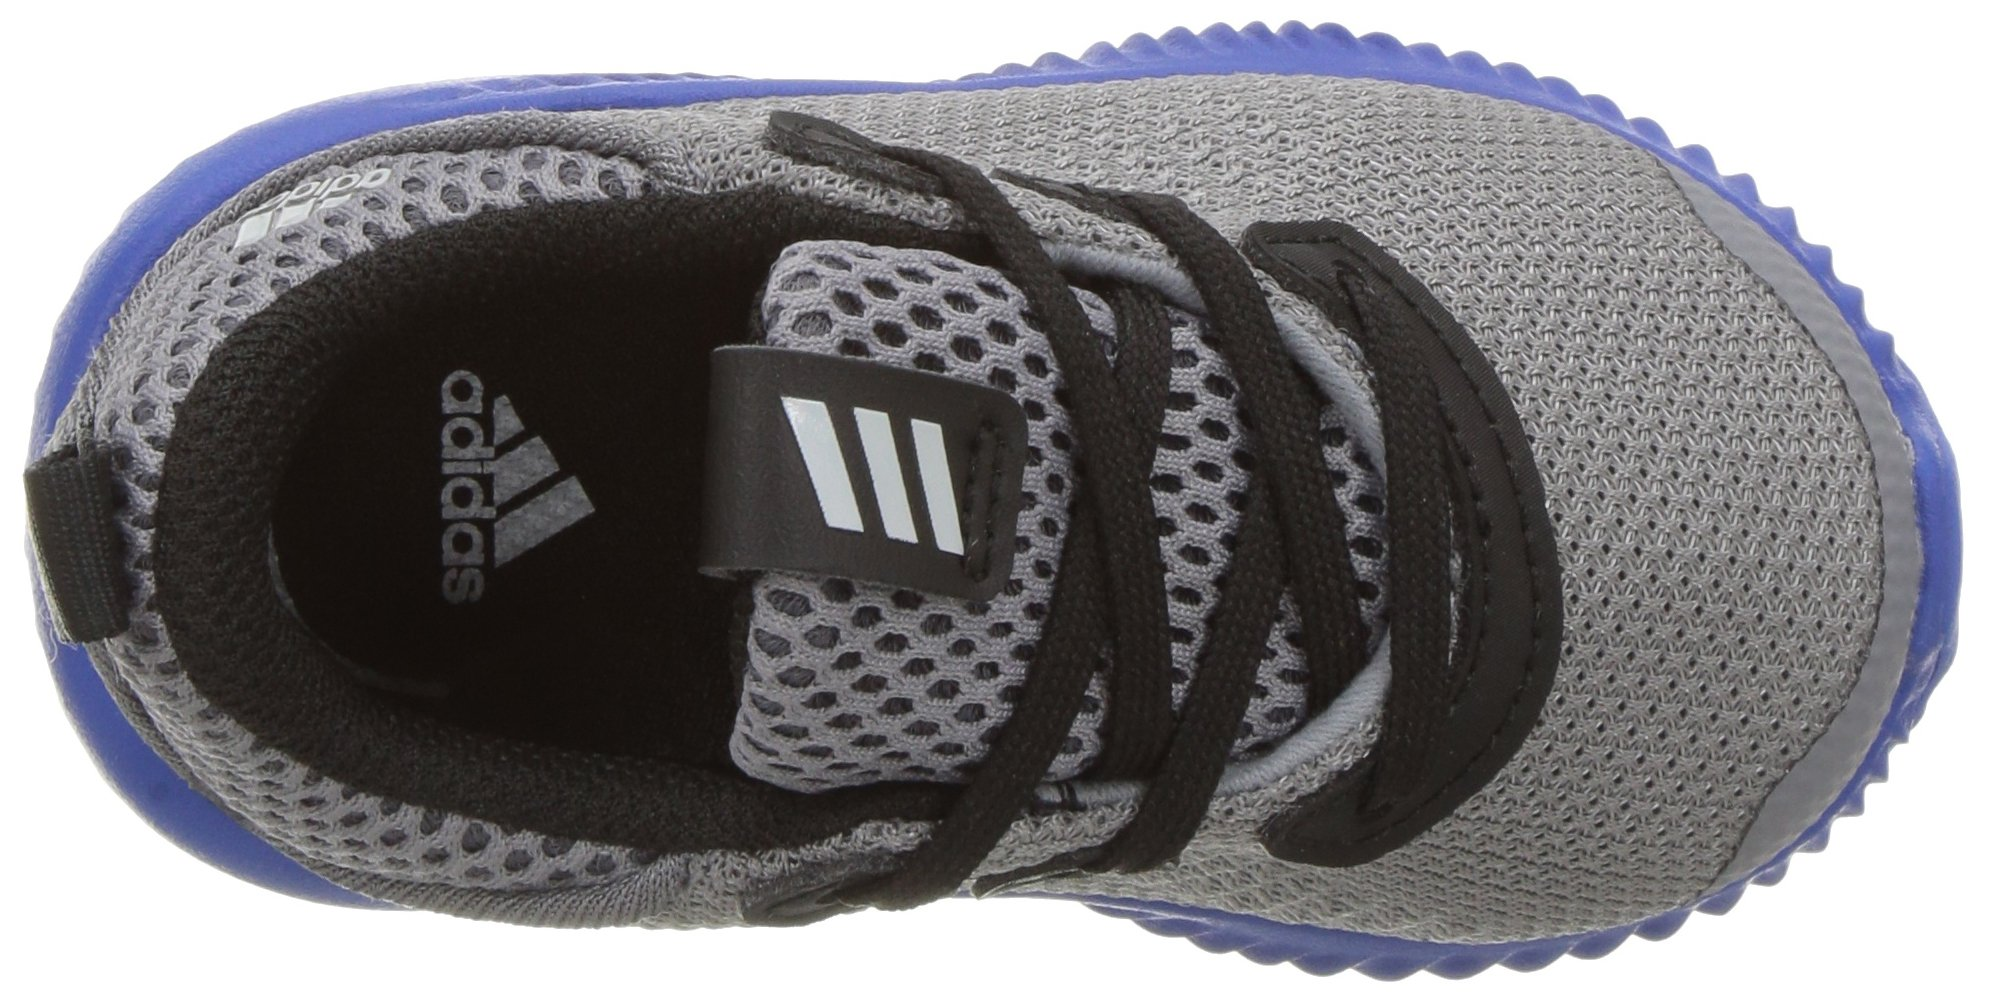 adidas Kids' Alphabounce Sneaker, Grey/Light Onix/Satellite, 7 M US Toddler by adidas (Image #8)